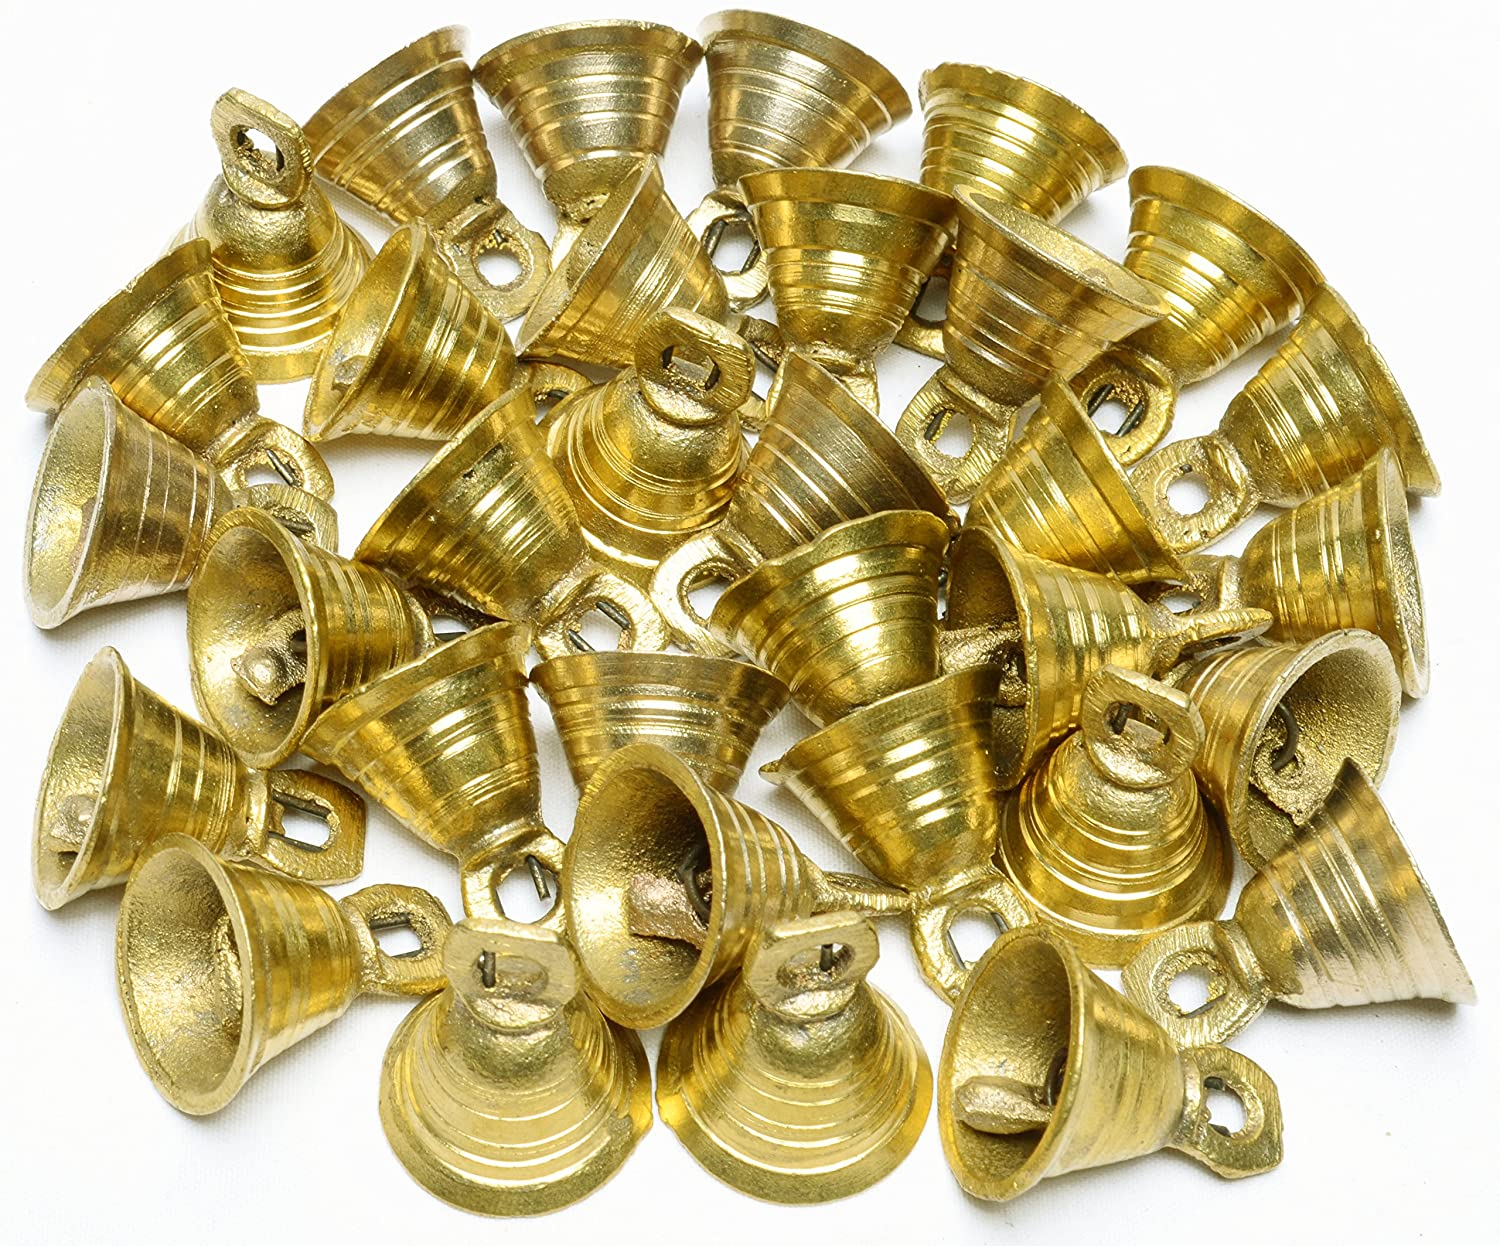 1H Lot 30 Brass Bells Elephant Cow Camel Decor Bells Vintage Style Indian Craft AzKrafts